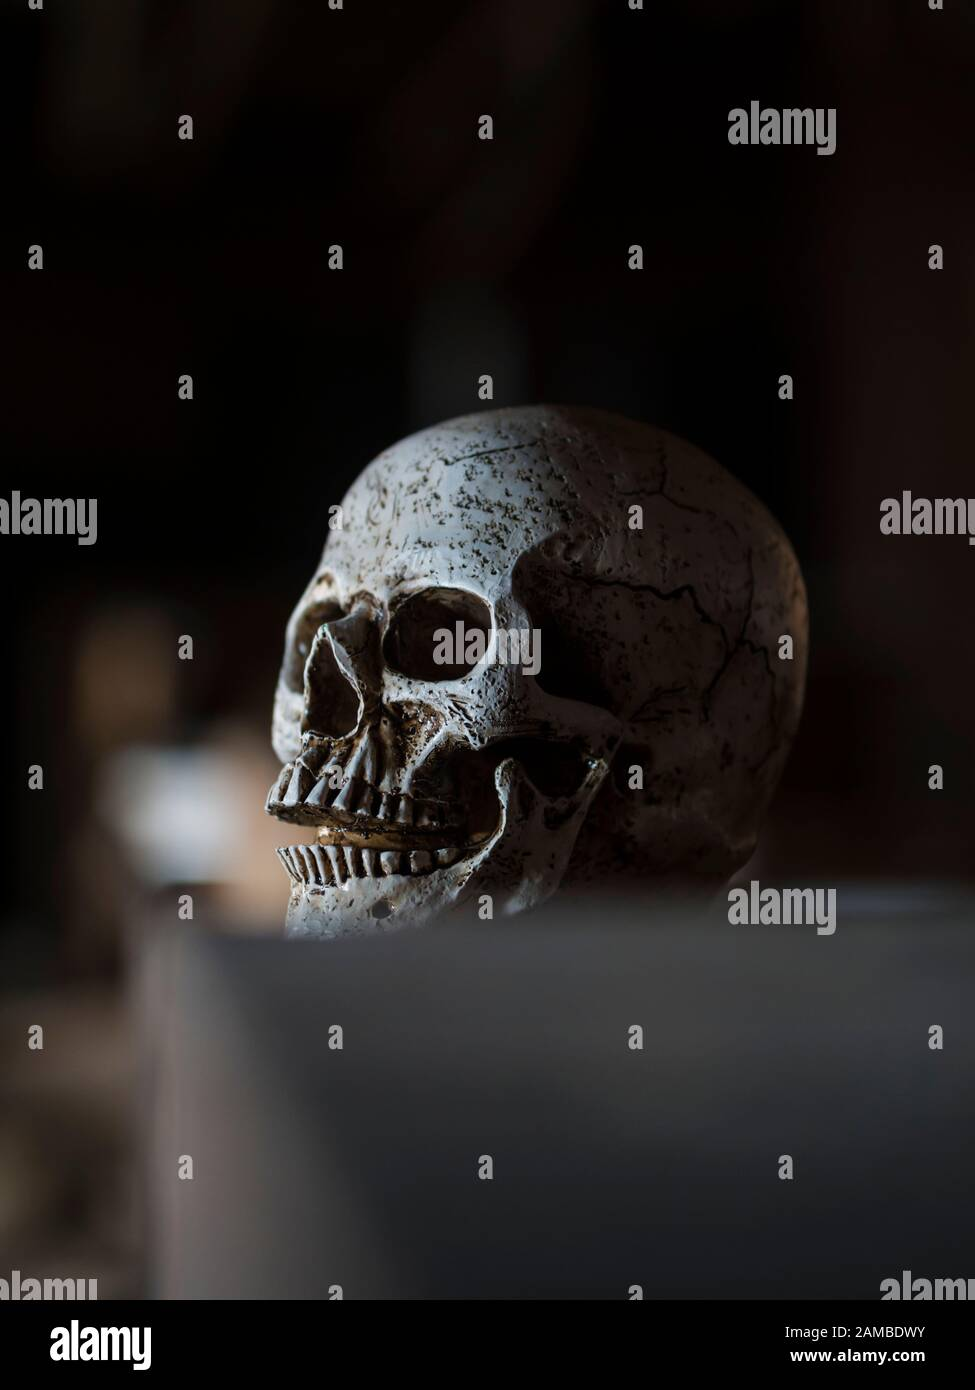 Human skull at midnignt mid-night sidelight Black blurry dark background looking aside away Stock Photo